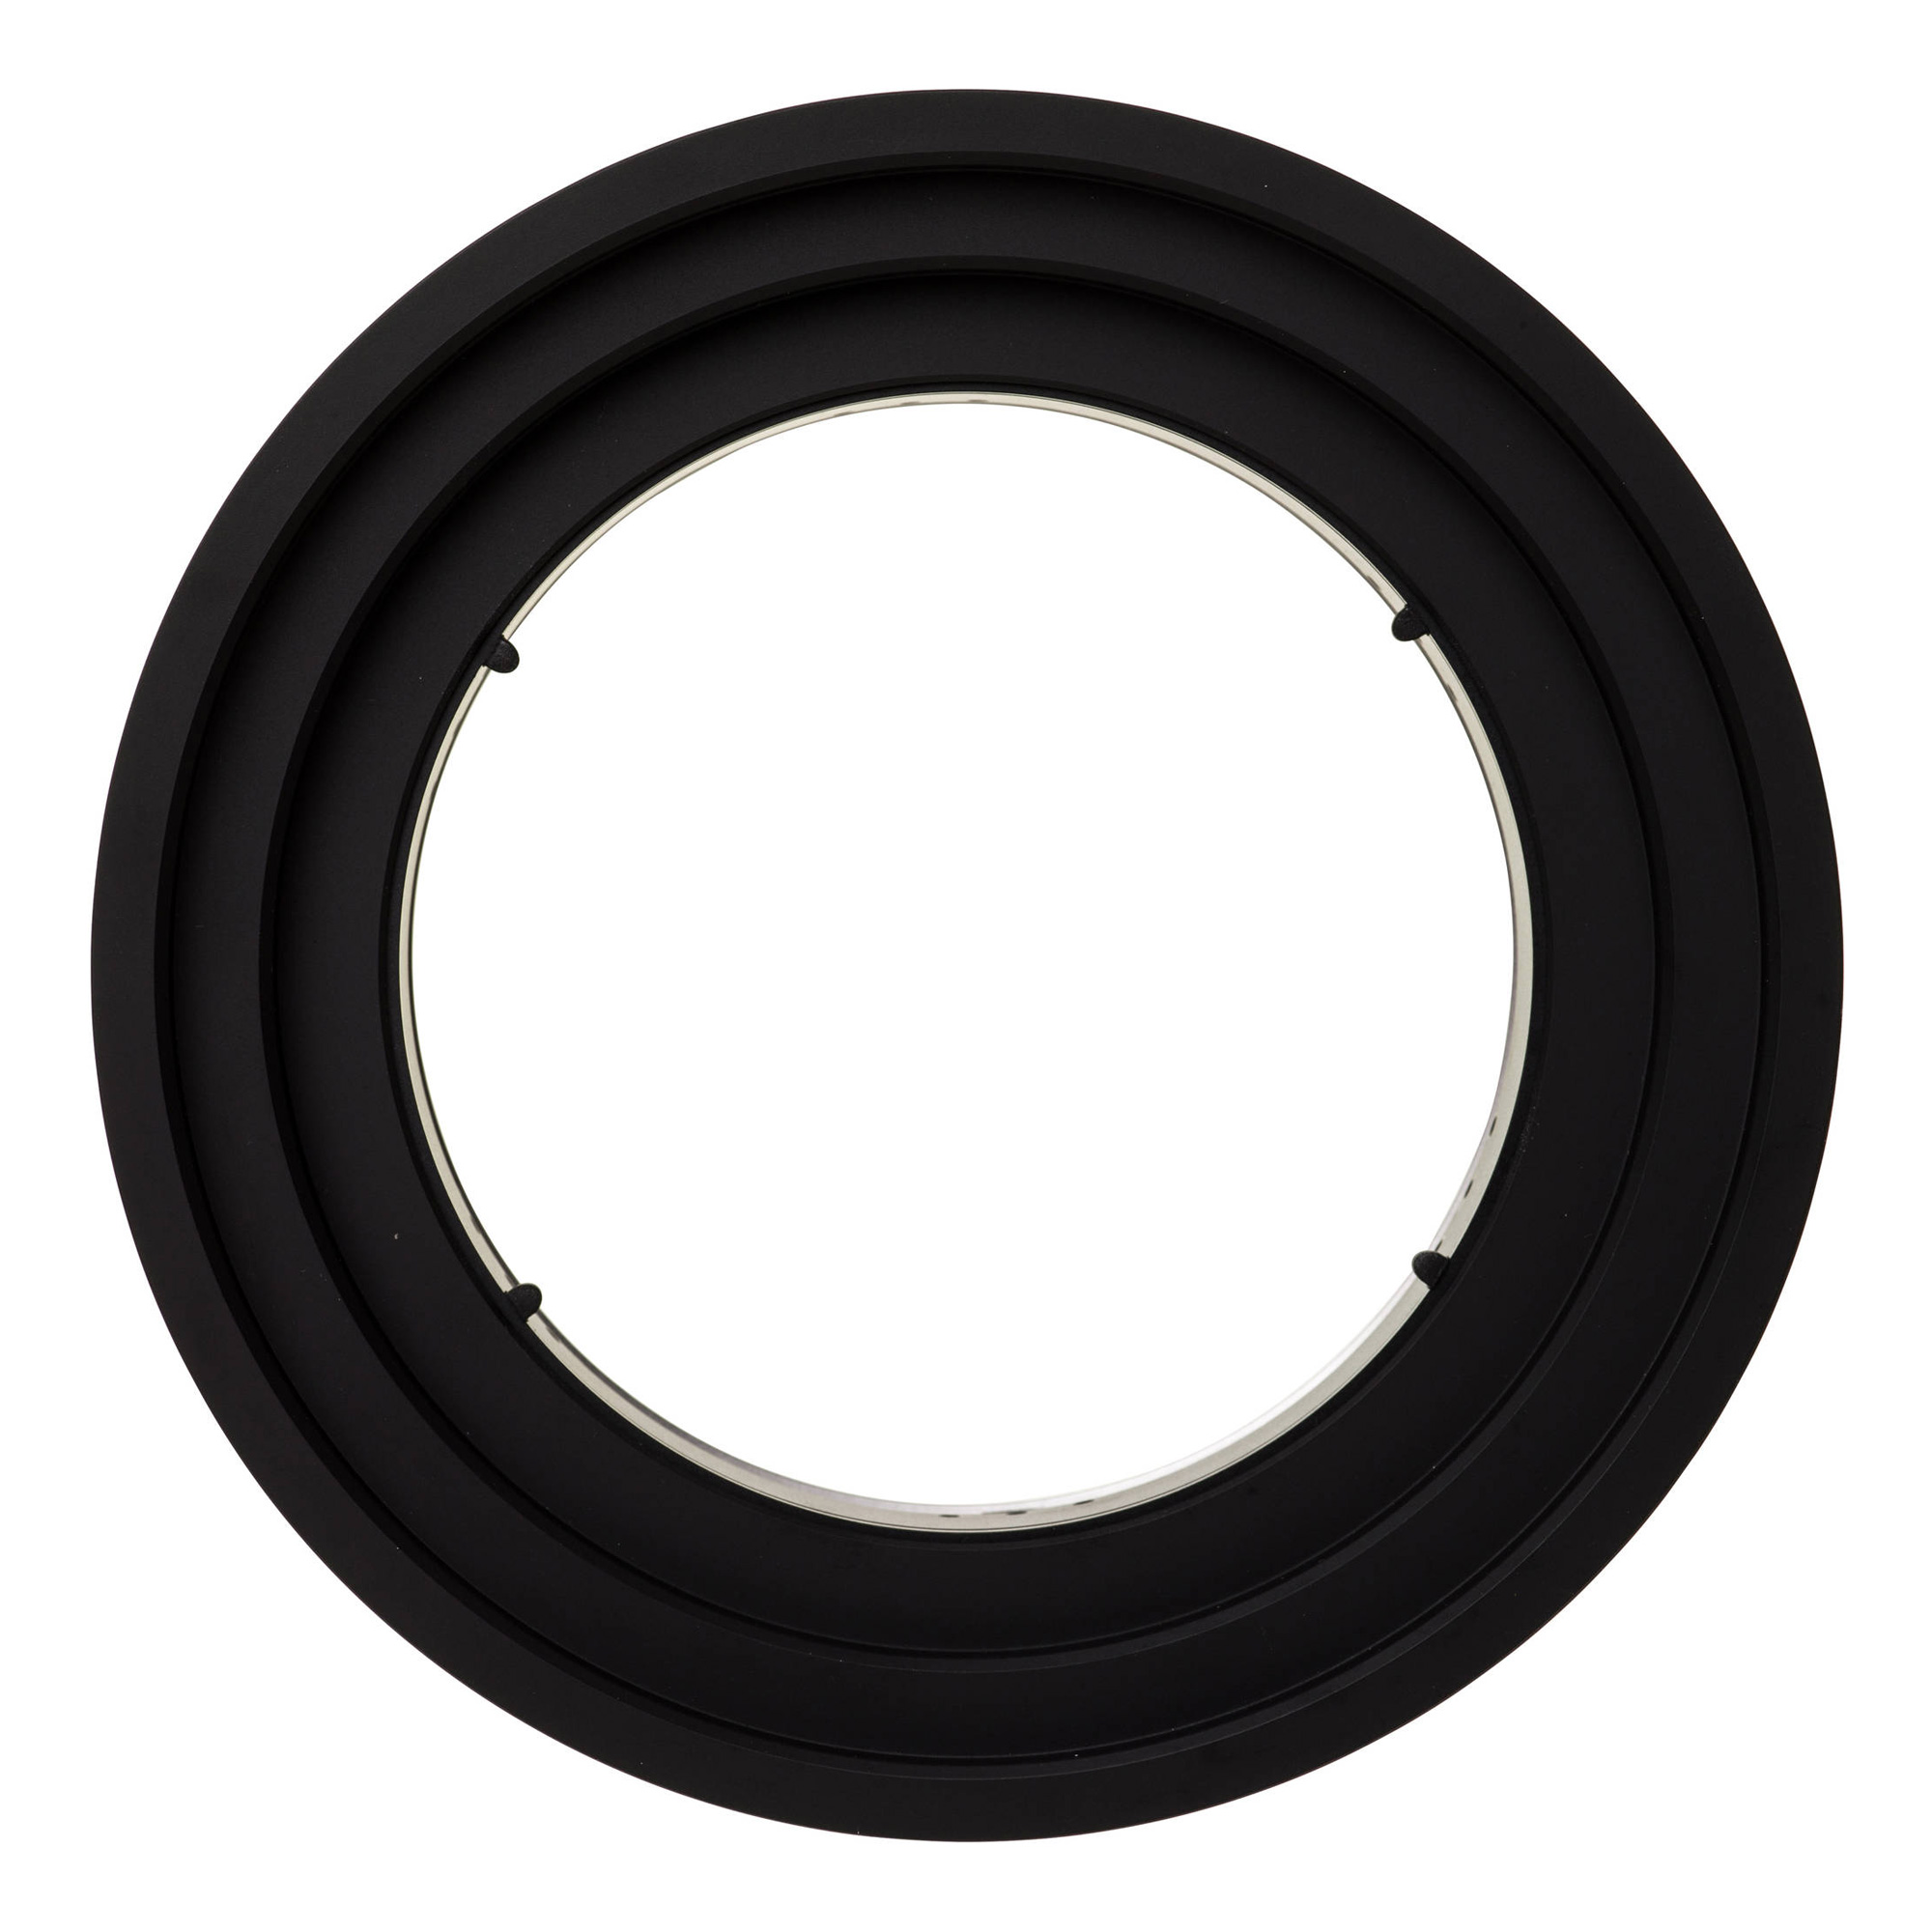 150mm Professional Filter Holder Lens Ring for Tamron 15-30mm f/2.8 DI VC USD Lens